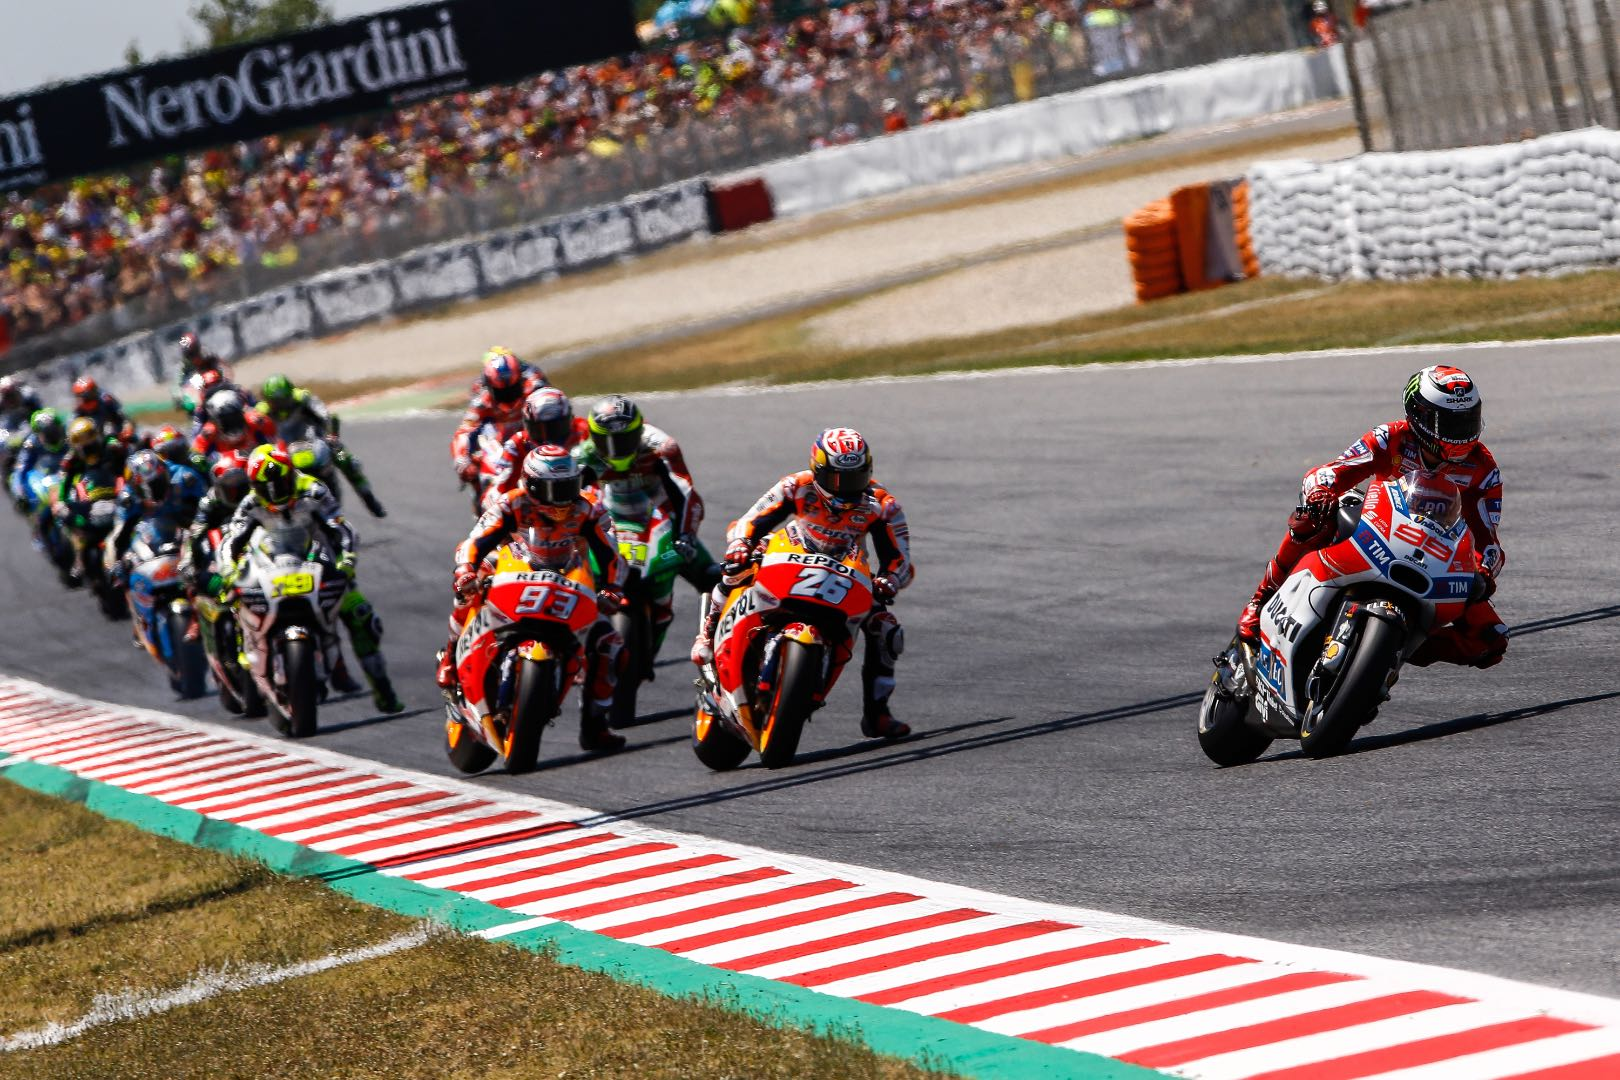 2017 Catalunya MotoGP Results: Beginning of race